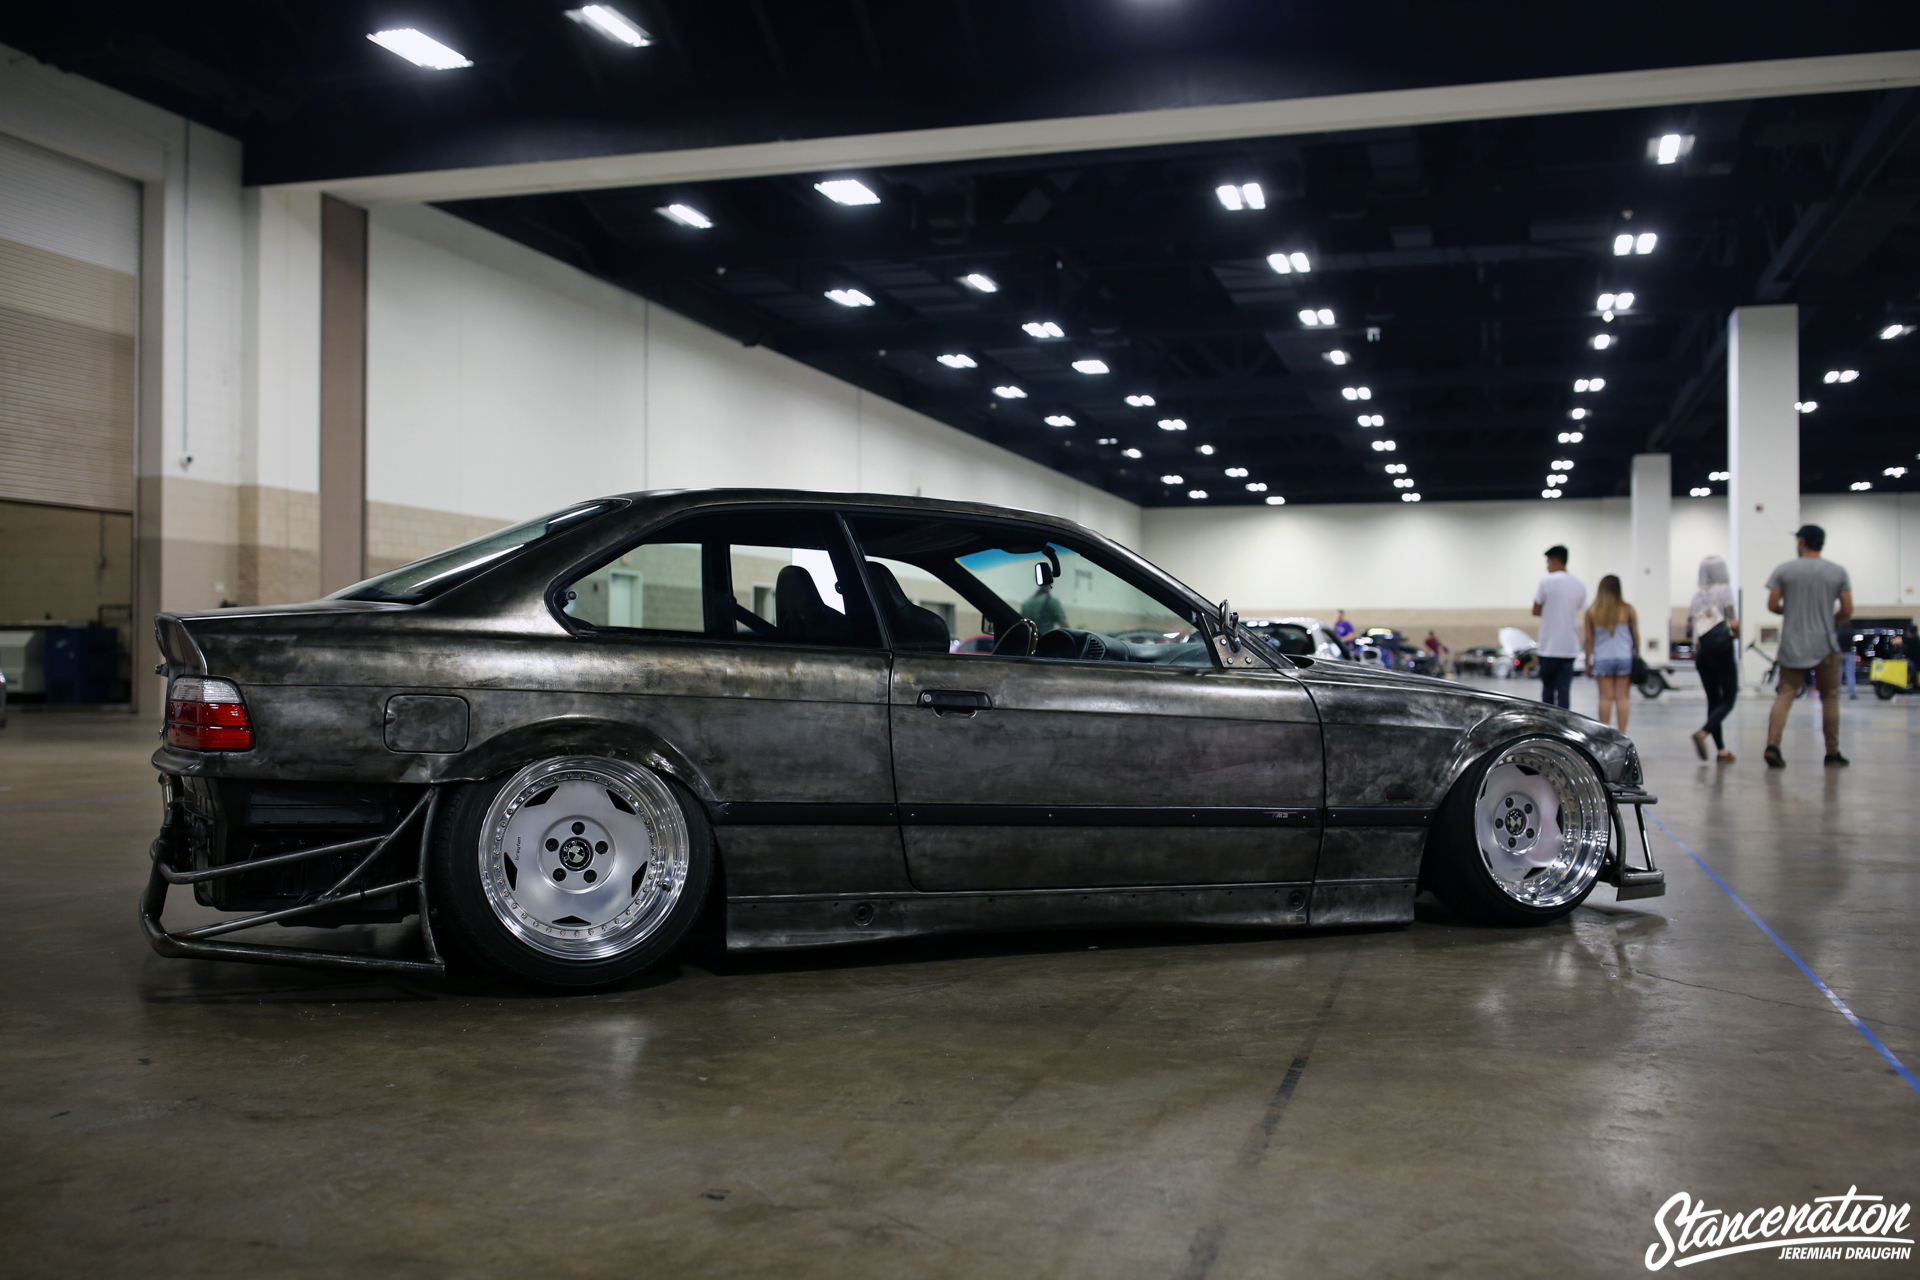 [Image: StanceNation-Texas-2016-12.jpg]